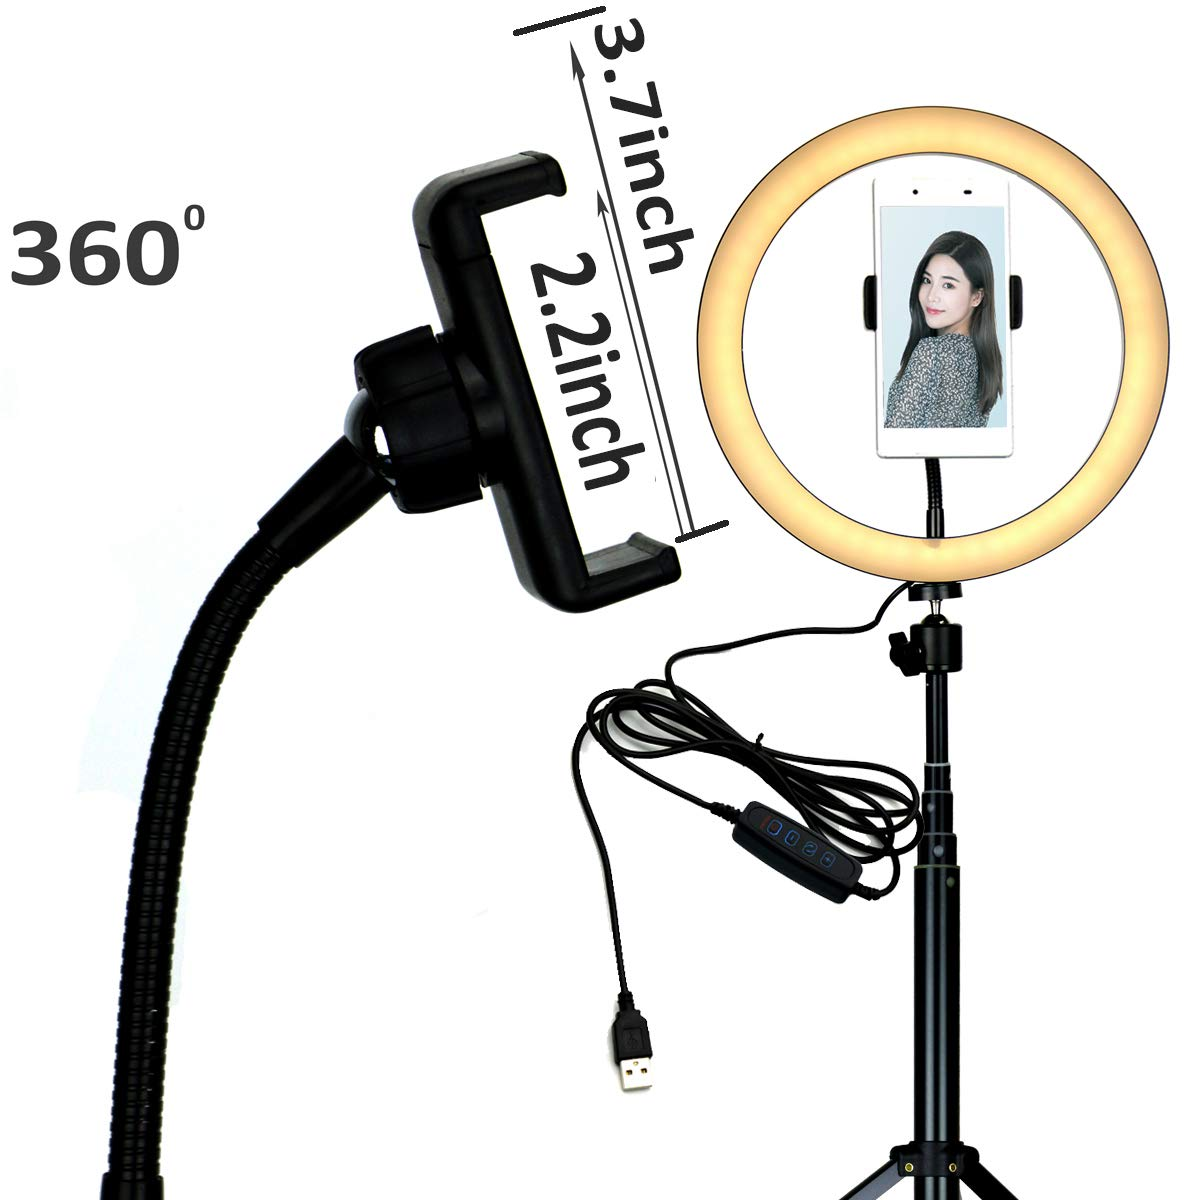 10'' Selfie LED Ring Light with Tripod Stand &Cell Phone Holder Desktop Lamp Mini Led Camera Light for YouTube Video and Live Makeup/Photography by COOSPIDER (Image #4)